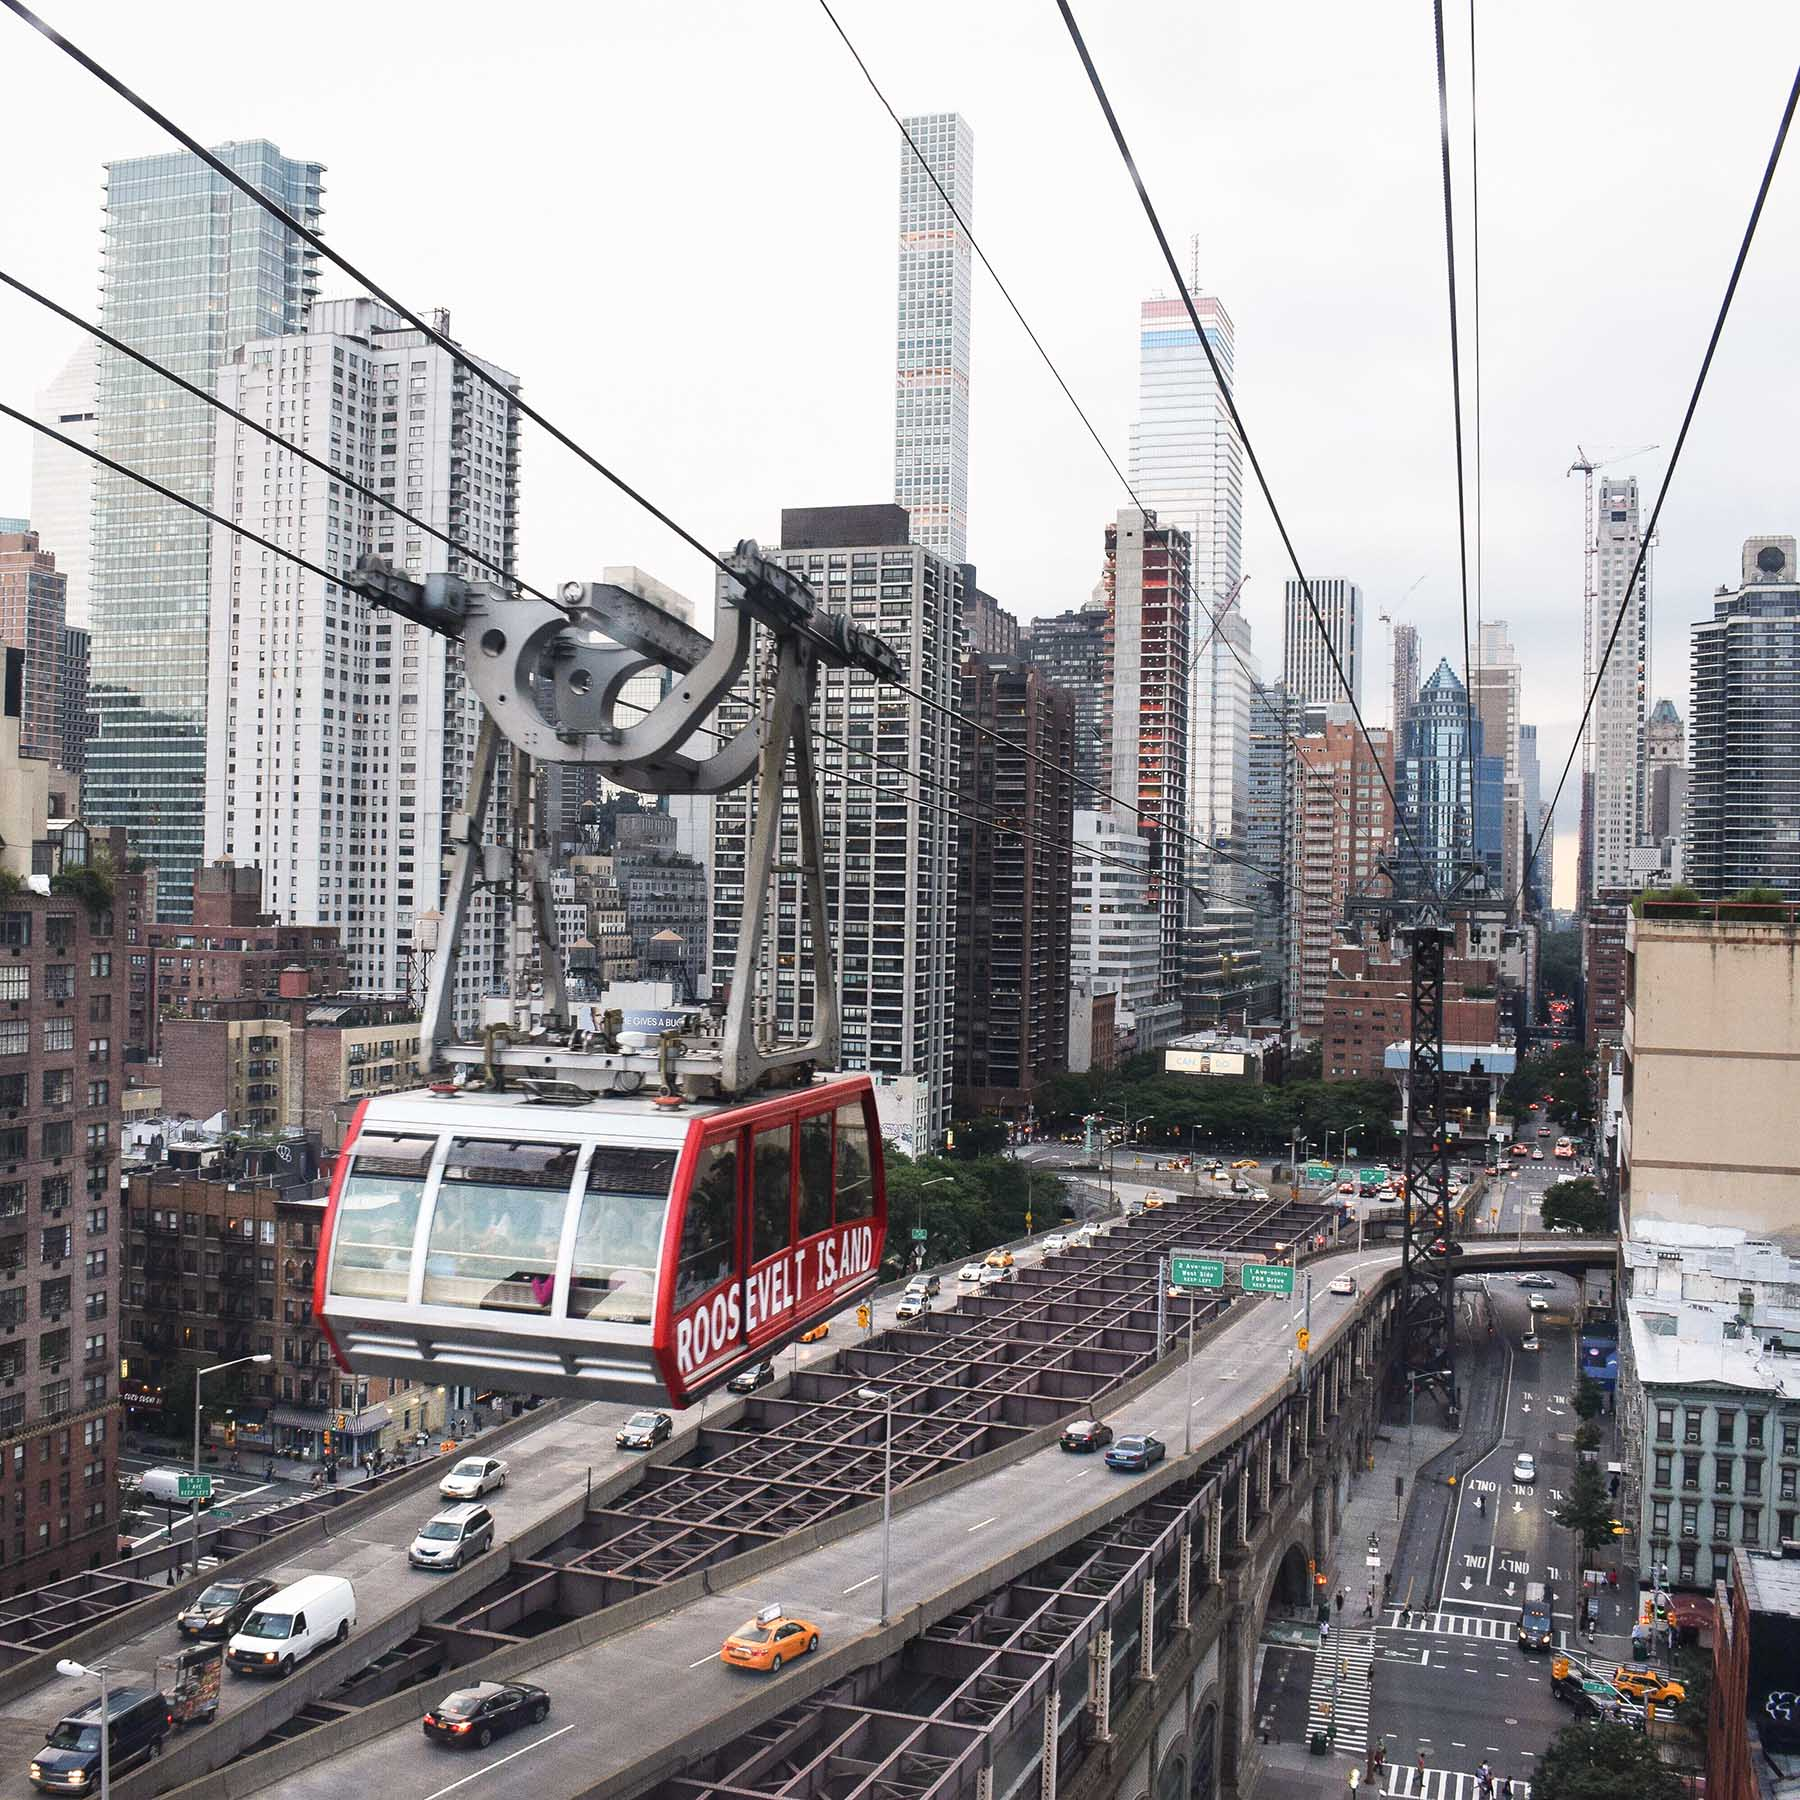 A cable car flies over an expressway, which is itself above city streets. In the background are skyscrapers.